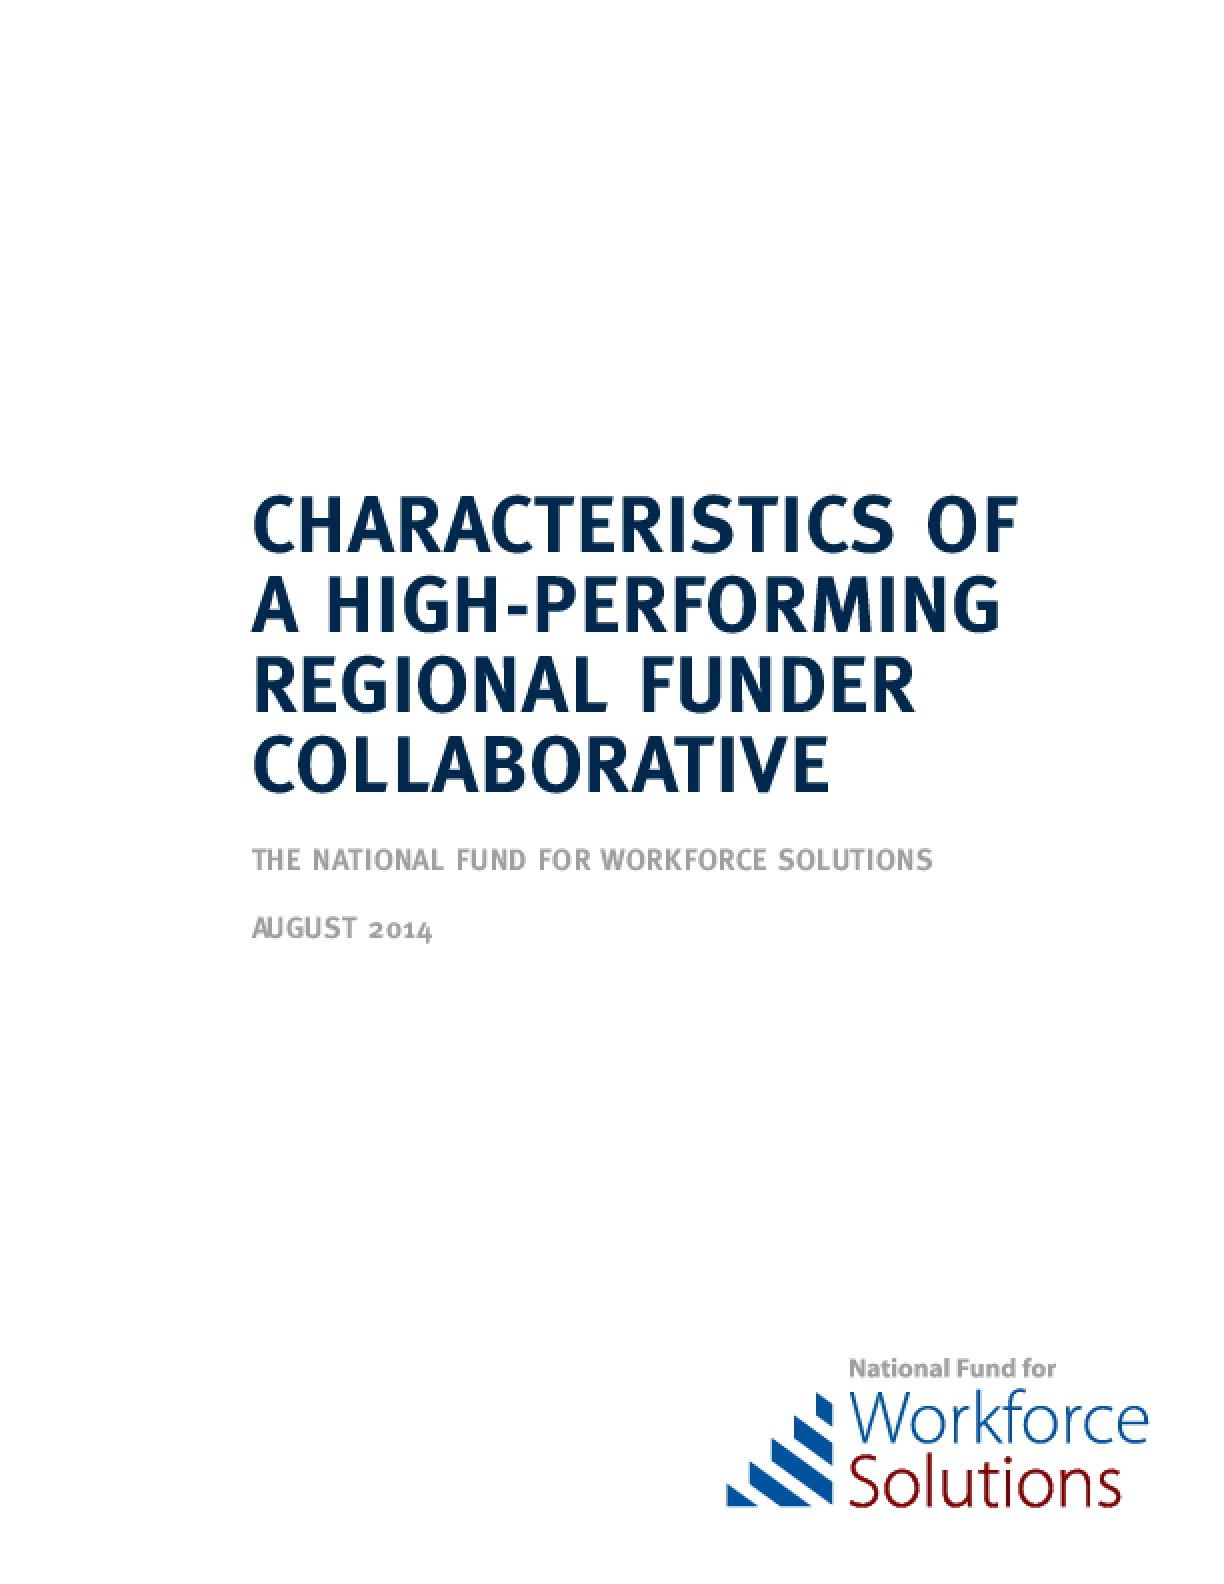 Characteristics of a High-Performing Regional Funder Collaborative